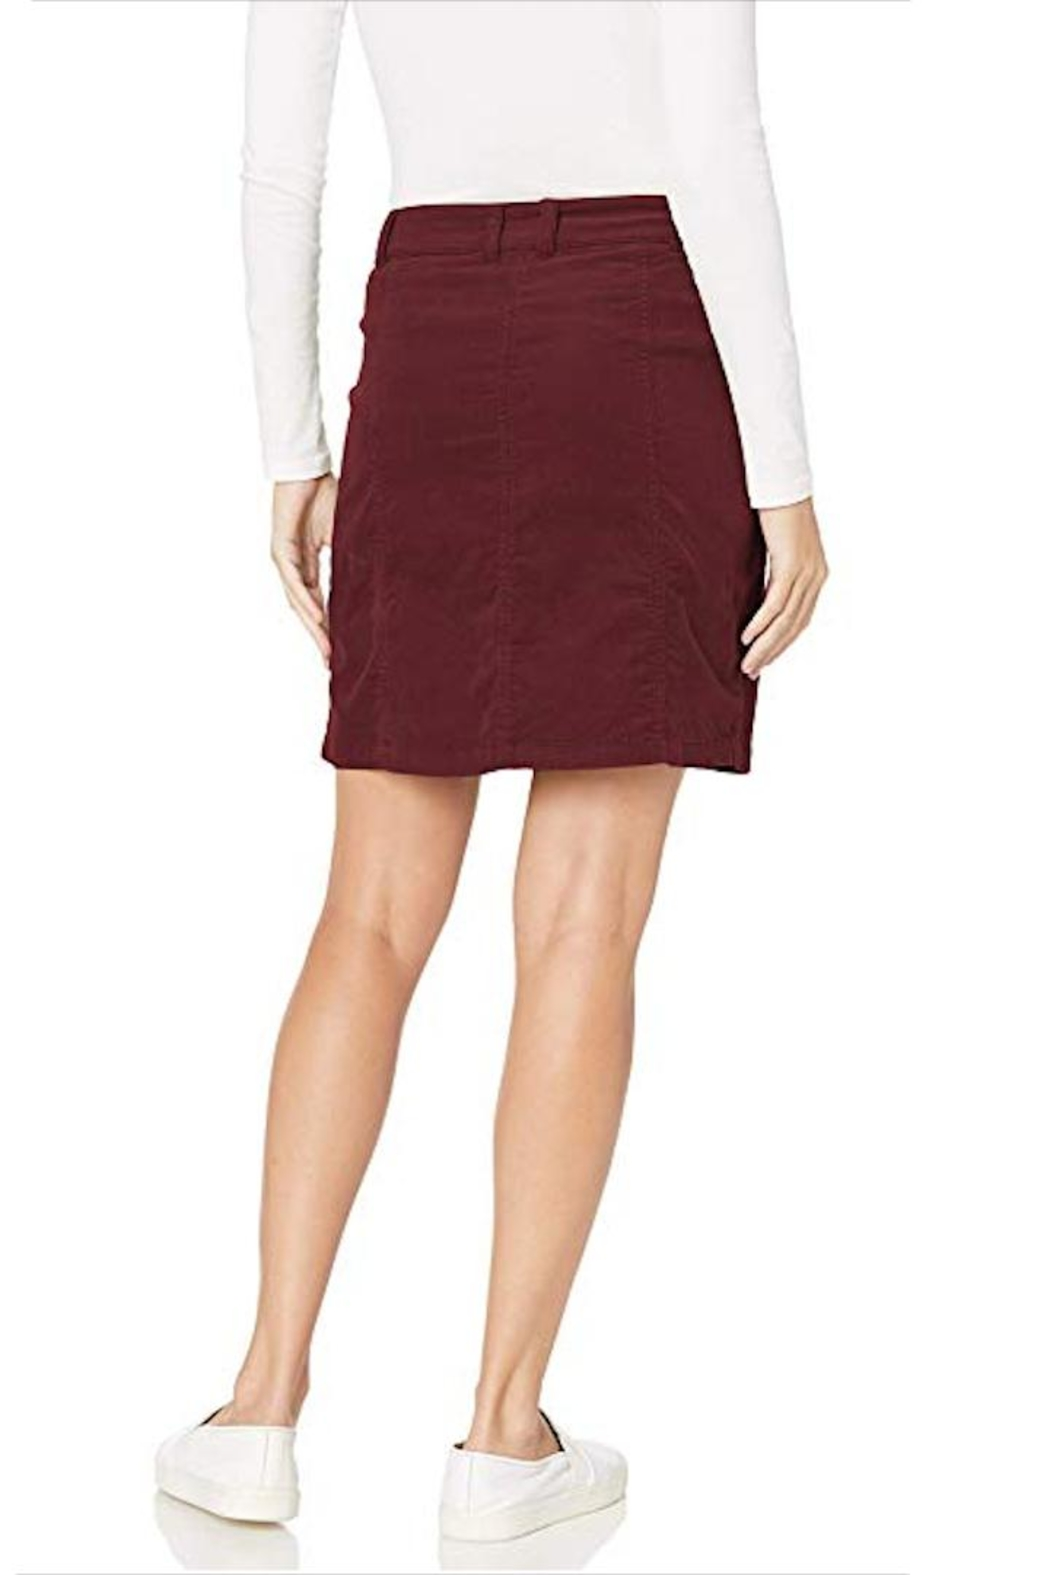 Aventura Clothing Organic-Corduroy Button-Front Skirt - Front Full Image